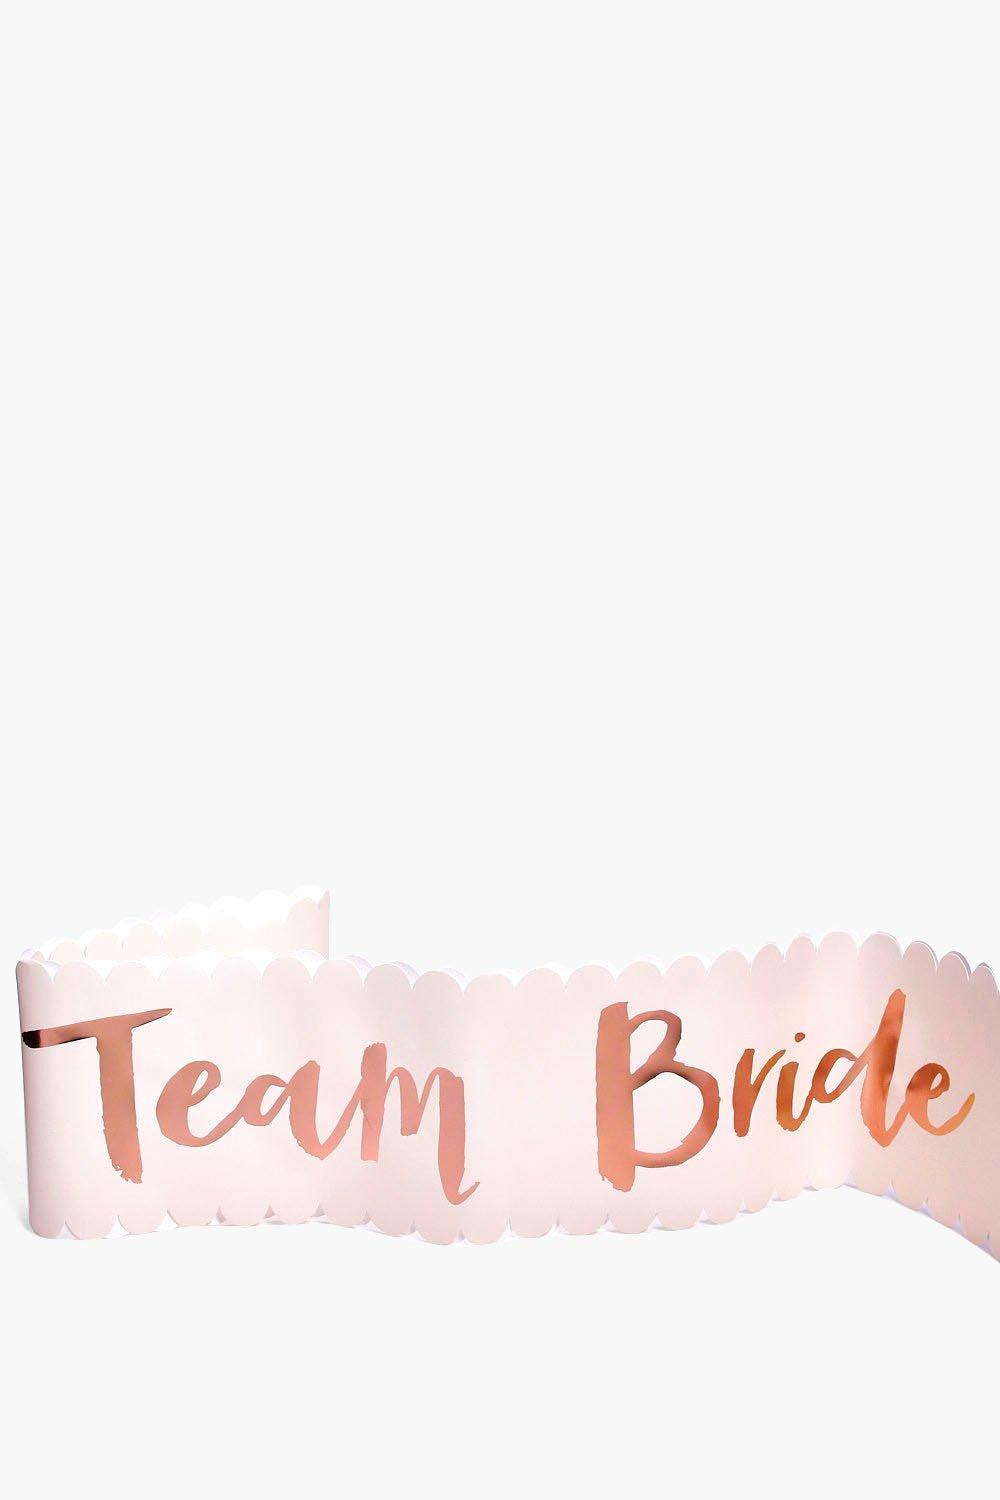 Bride Metallic Sash 6 Pack - rose gold - Team Brid